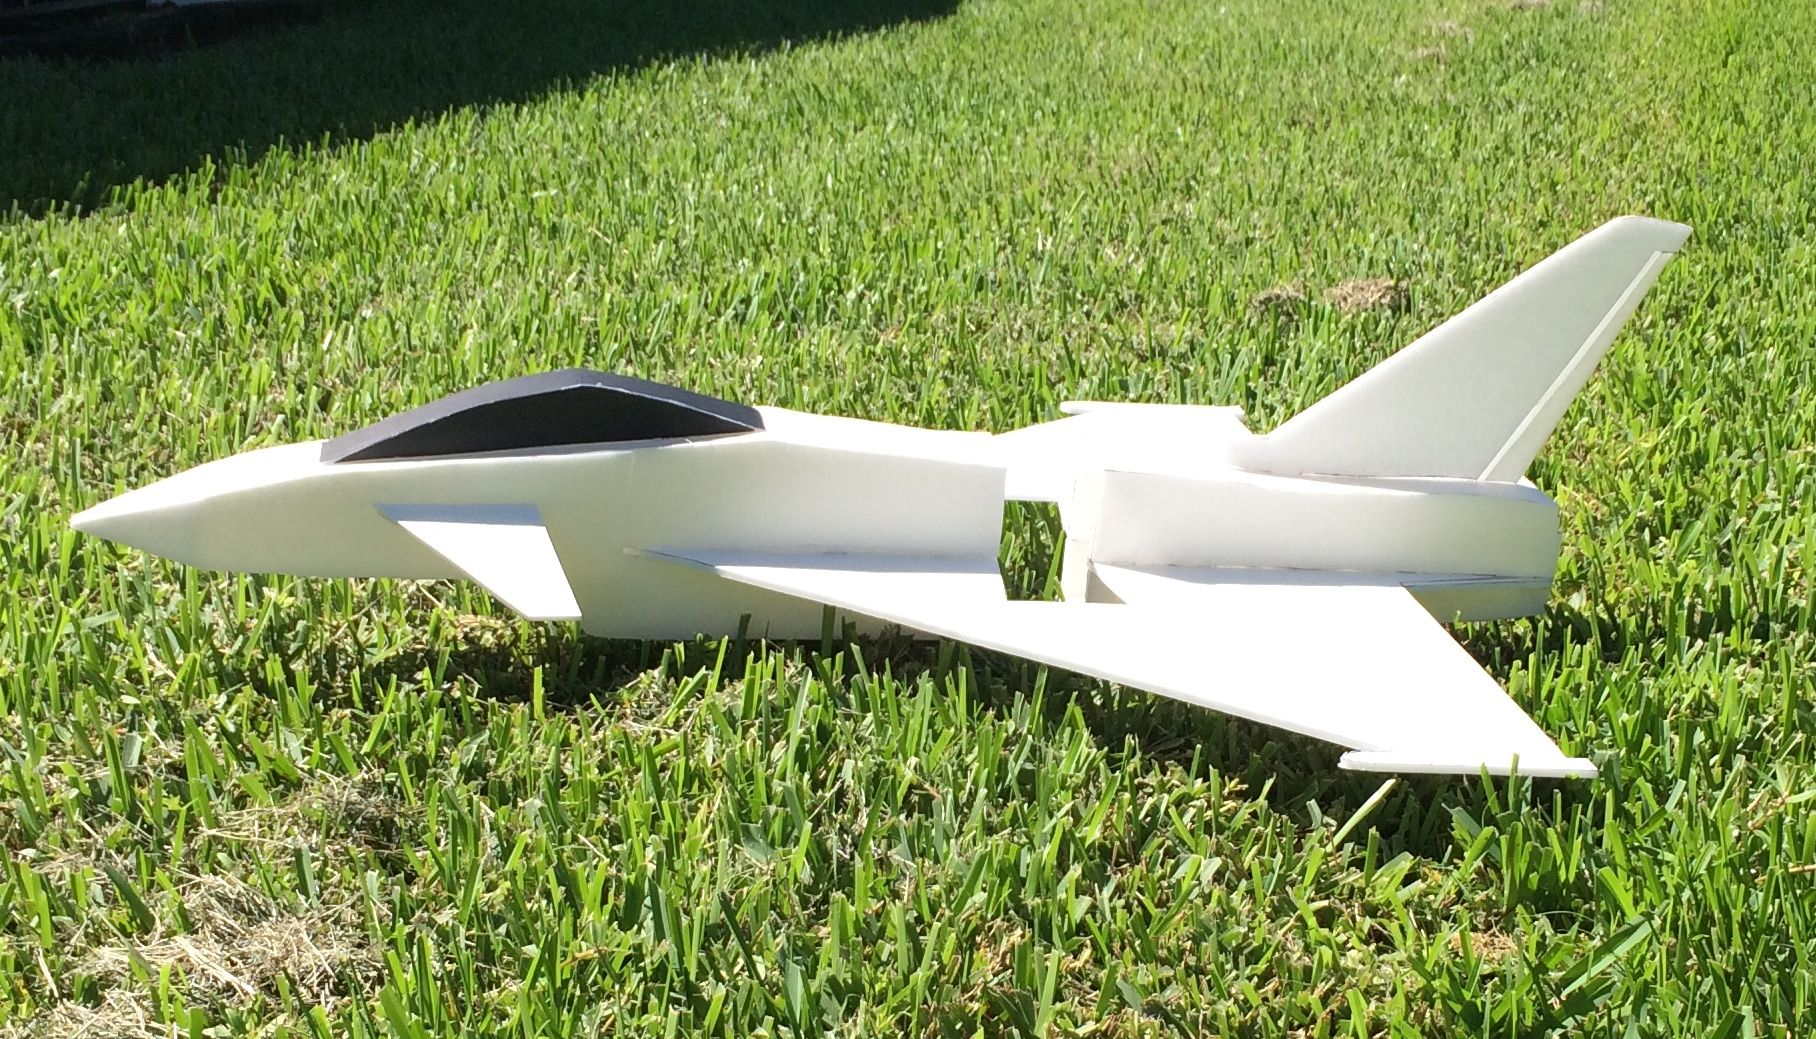 beginner rc jet with 359443613984241388 on Download Depron Airboat Plans moreover Basic Rc Airplane Aerobatics likewise Download Depron Airboat Plans additionally 462549 How Get Hobby Rc Taking Airplanes likewise 3d Printed Jet Engine.